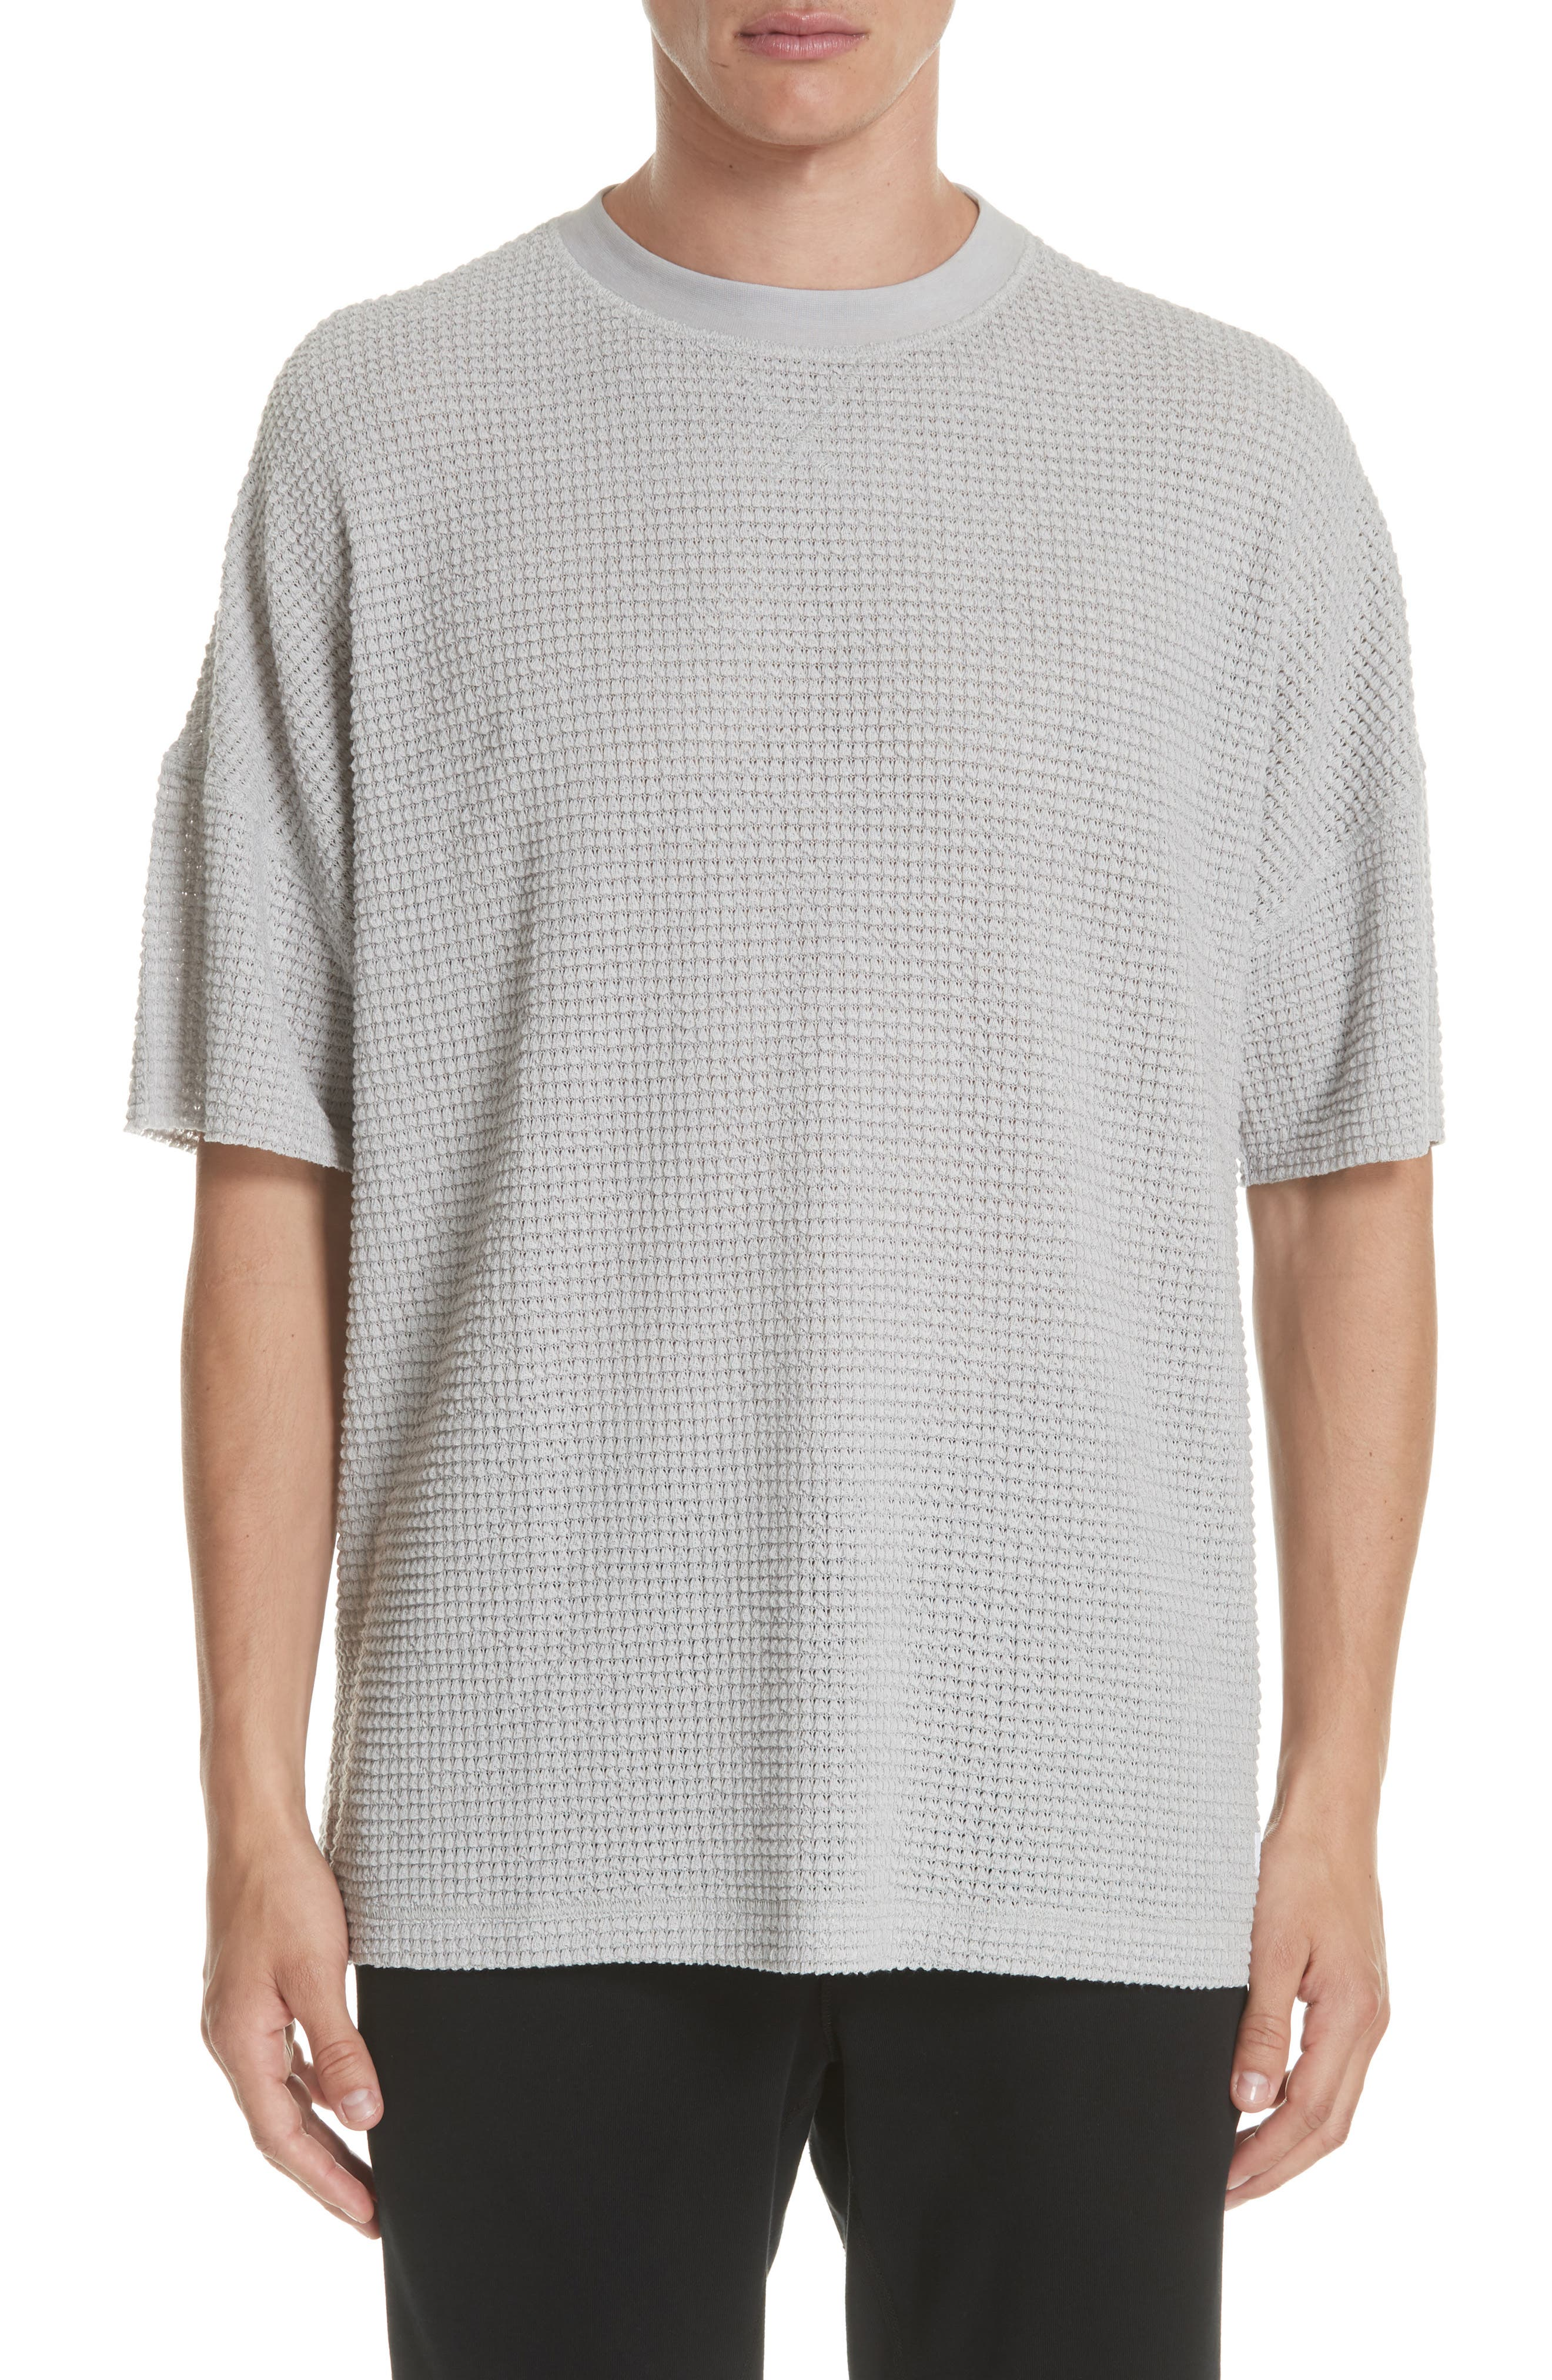 STAMPD Crossgrain T-Shirt in Rinsed Heather Grey